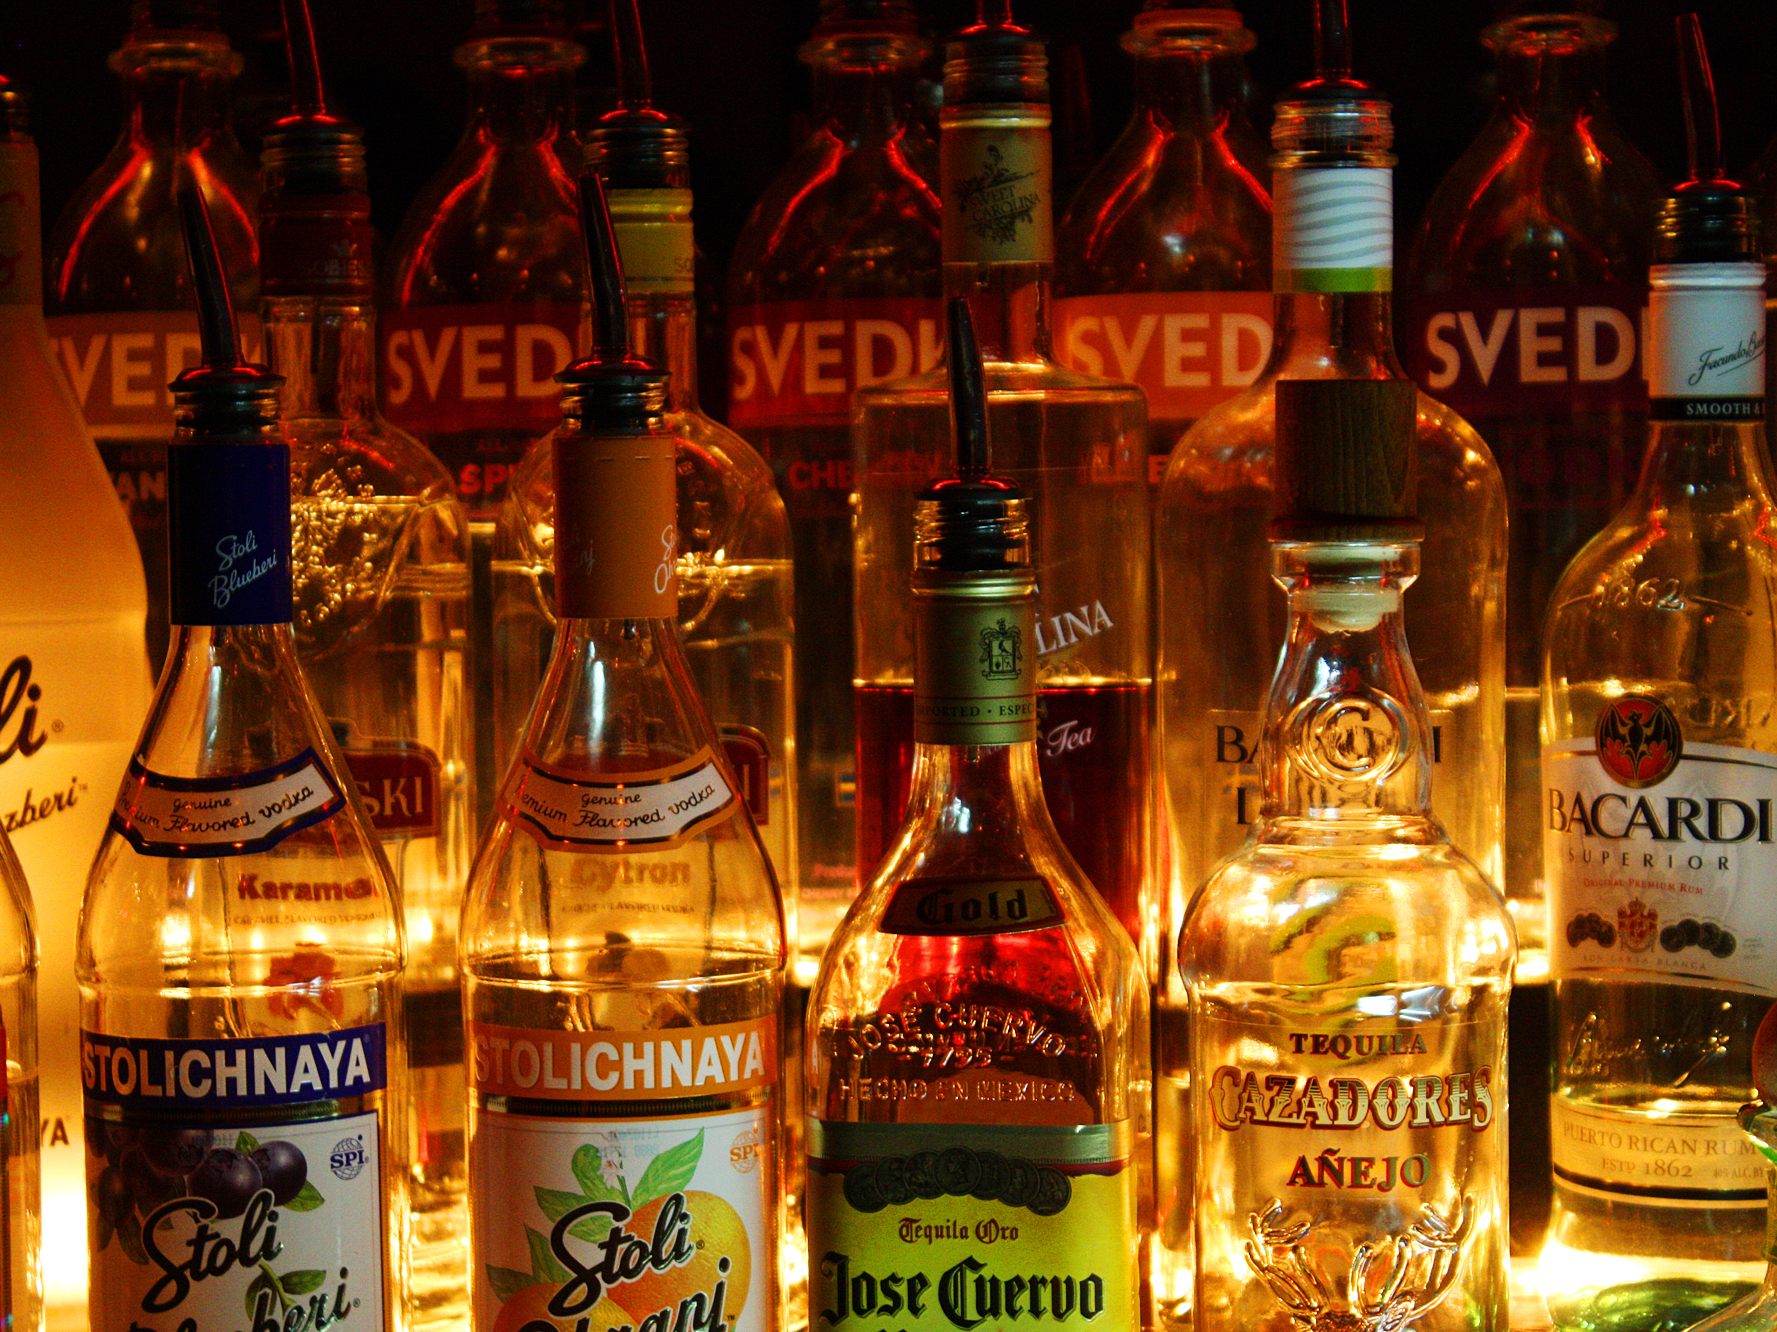 One in six adults binge drink, and that plays a role in most alcohol-related deaths. Photo: Intangible Arts/Flickr